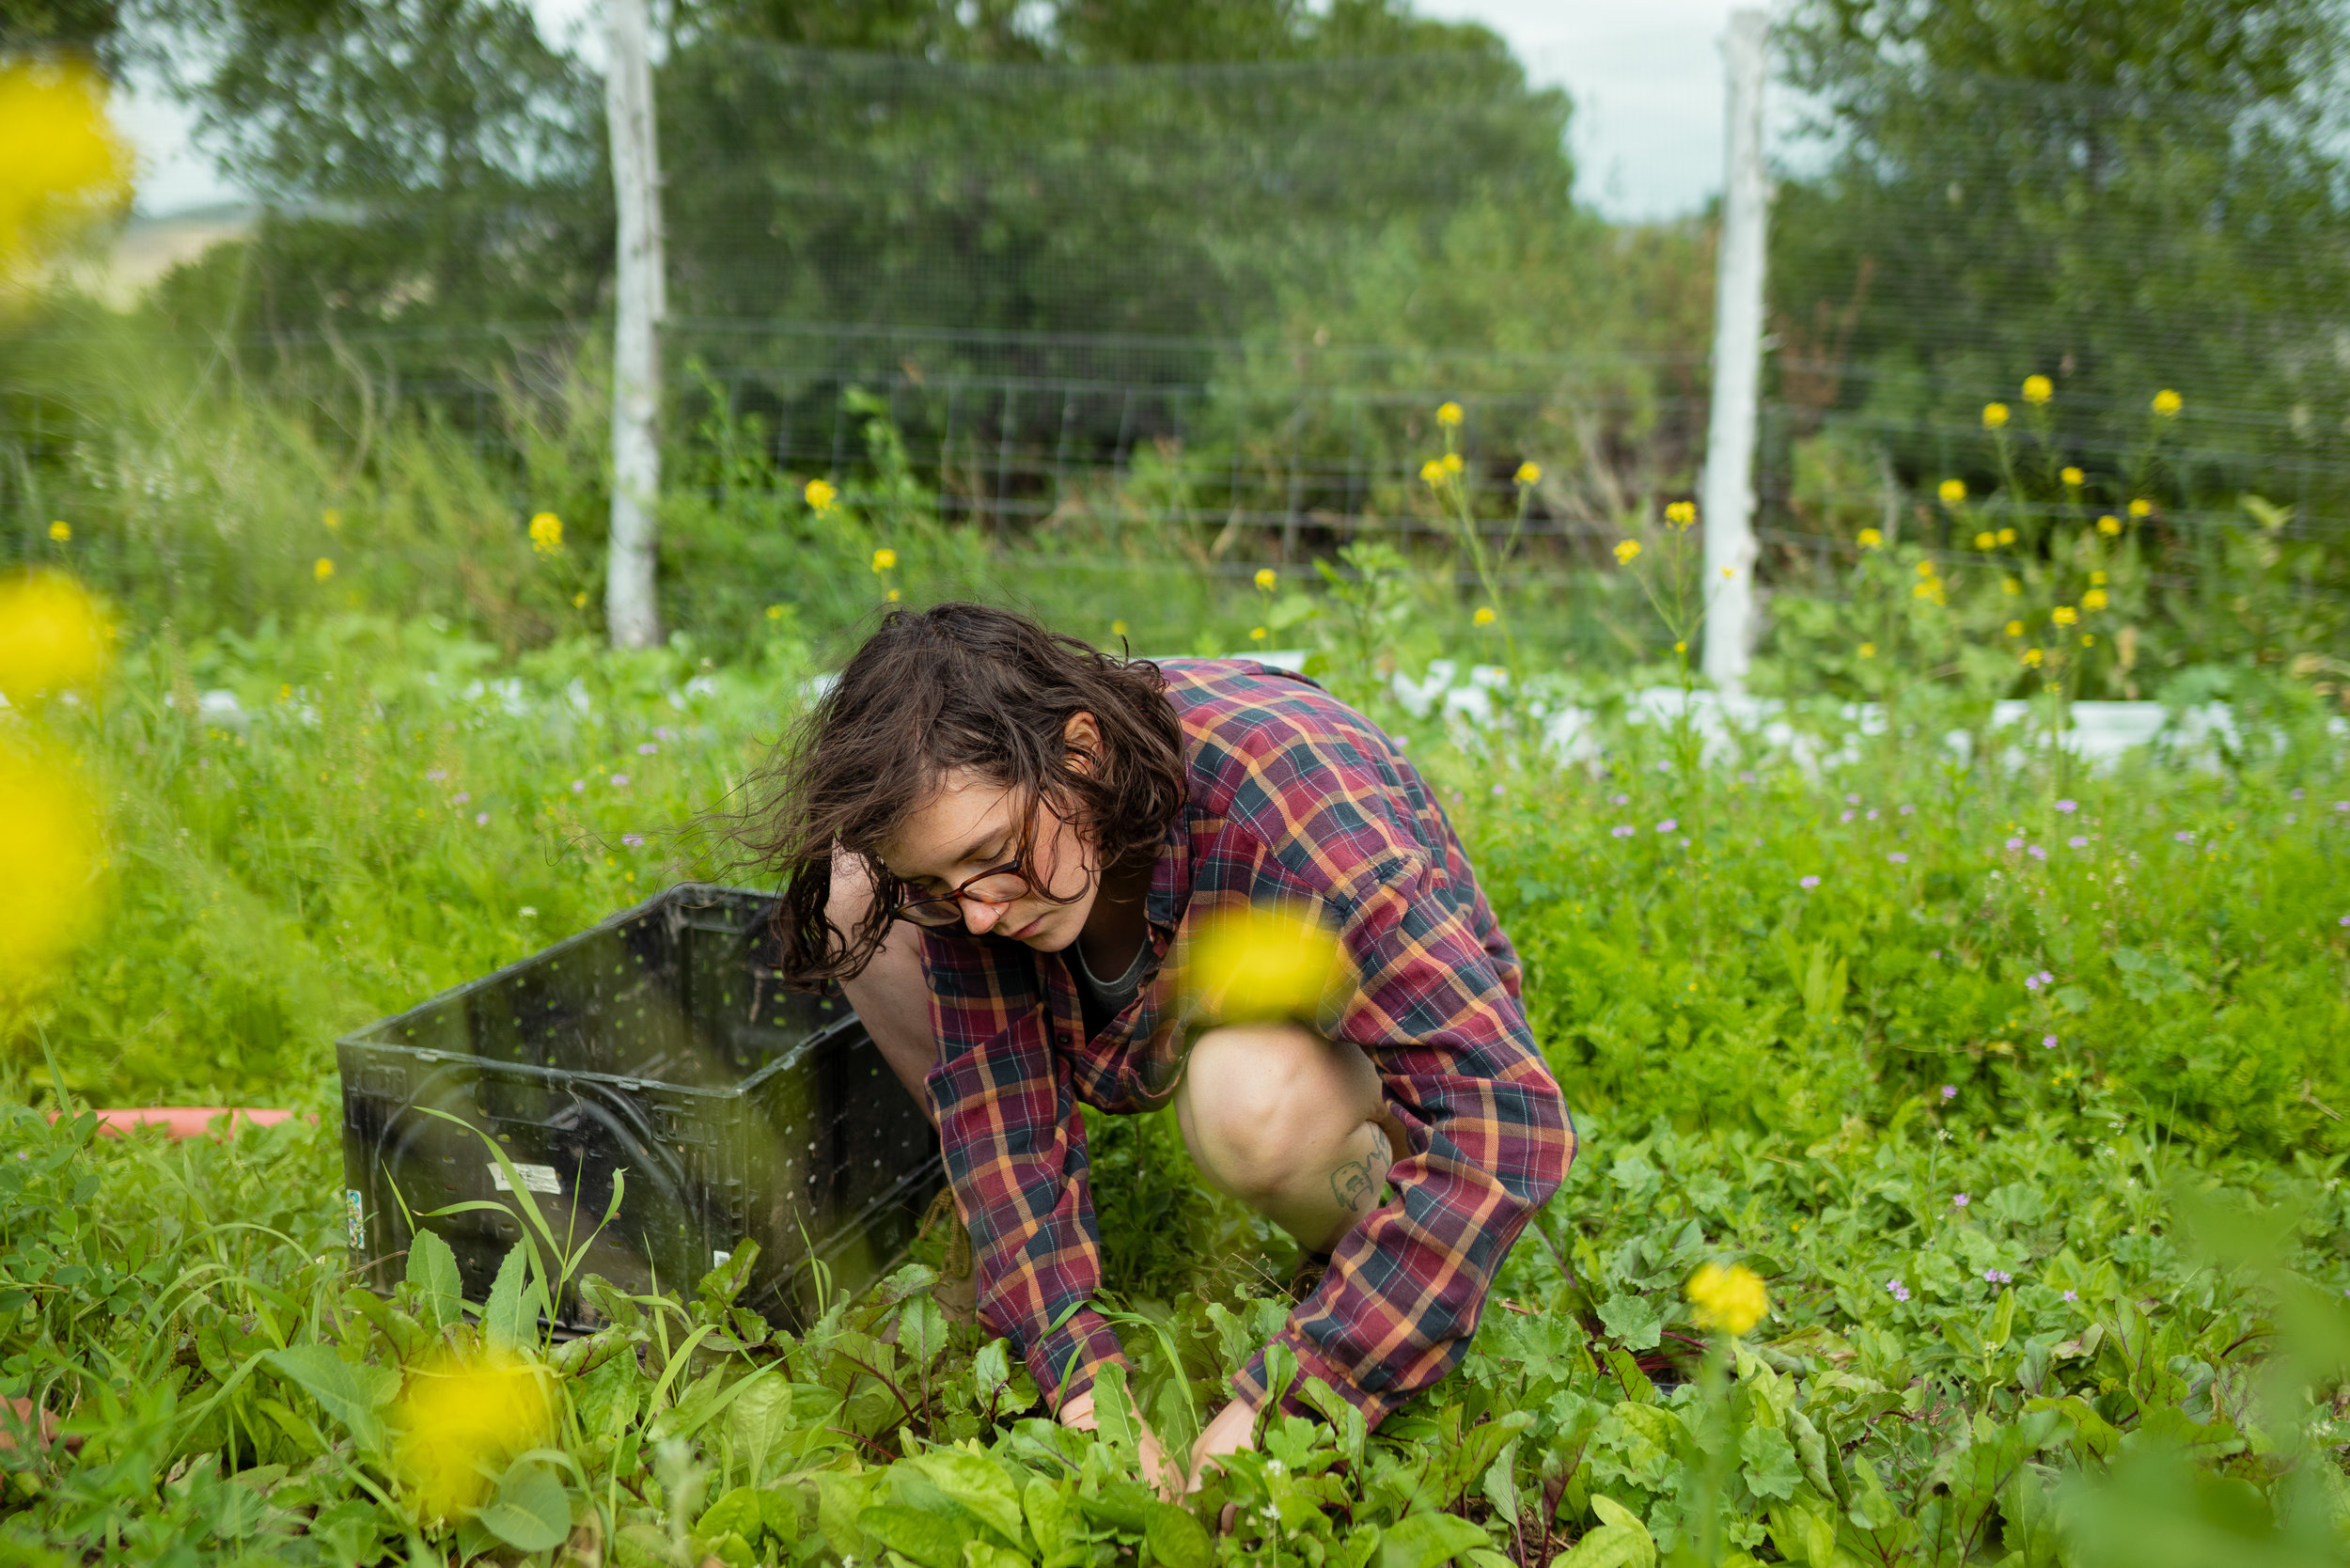 Picking beets at Sprig & Root Farm in Clarkston, Montana.